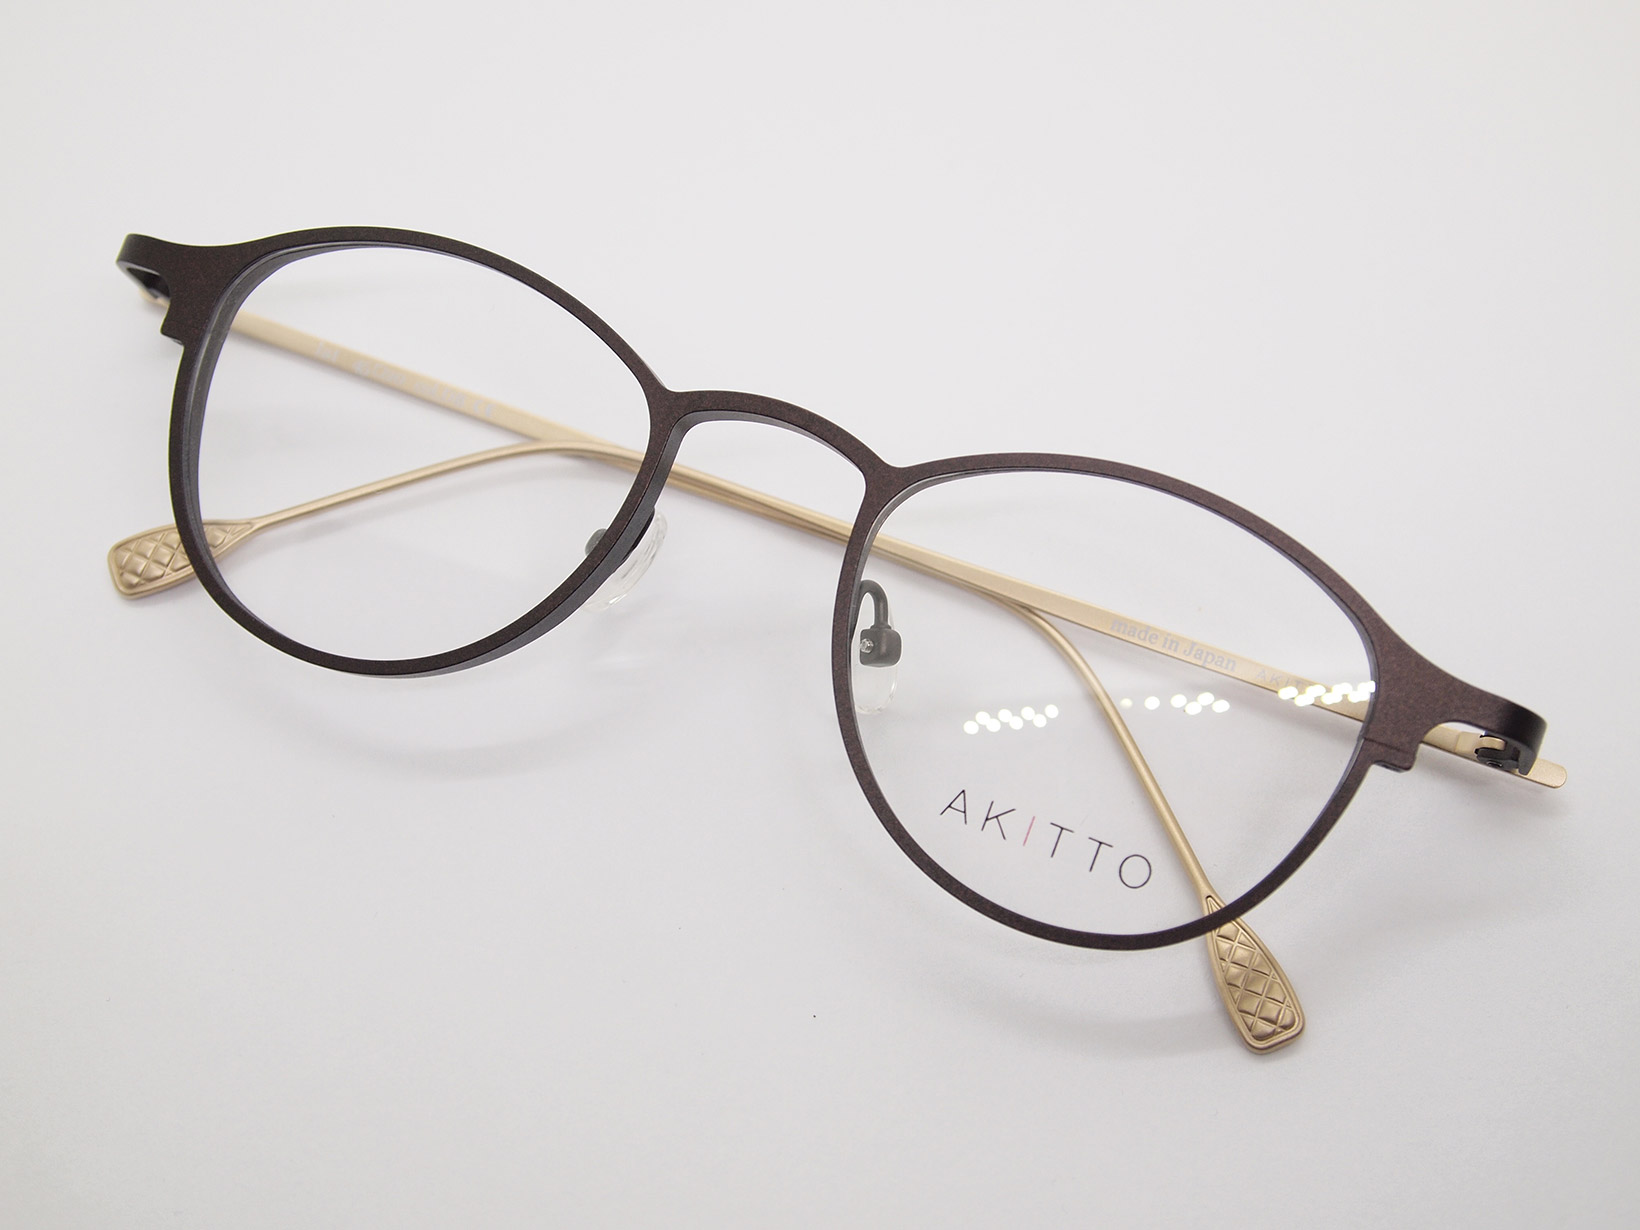 AKITTO 2021-4th lat color|DB size:45□20 material:titanium price:¥46,200-(税込み)